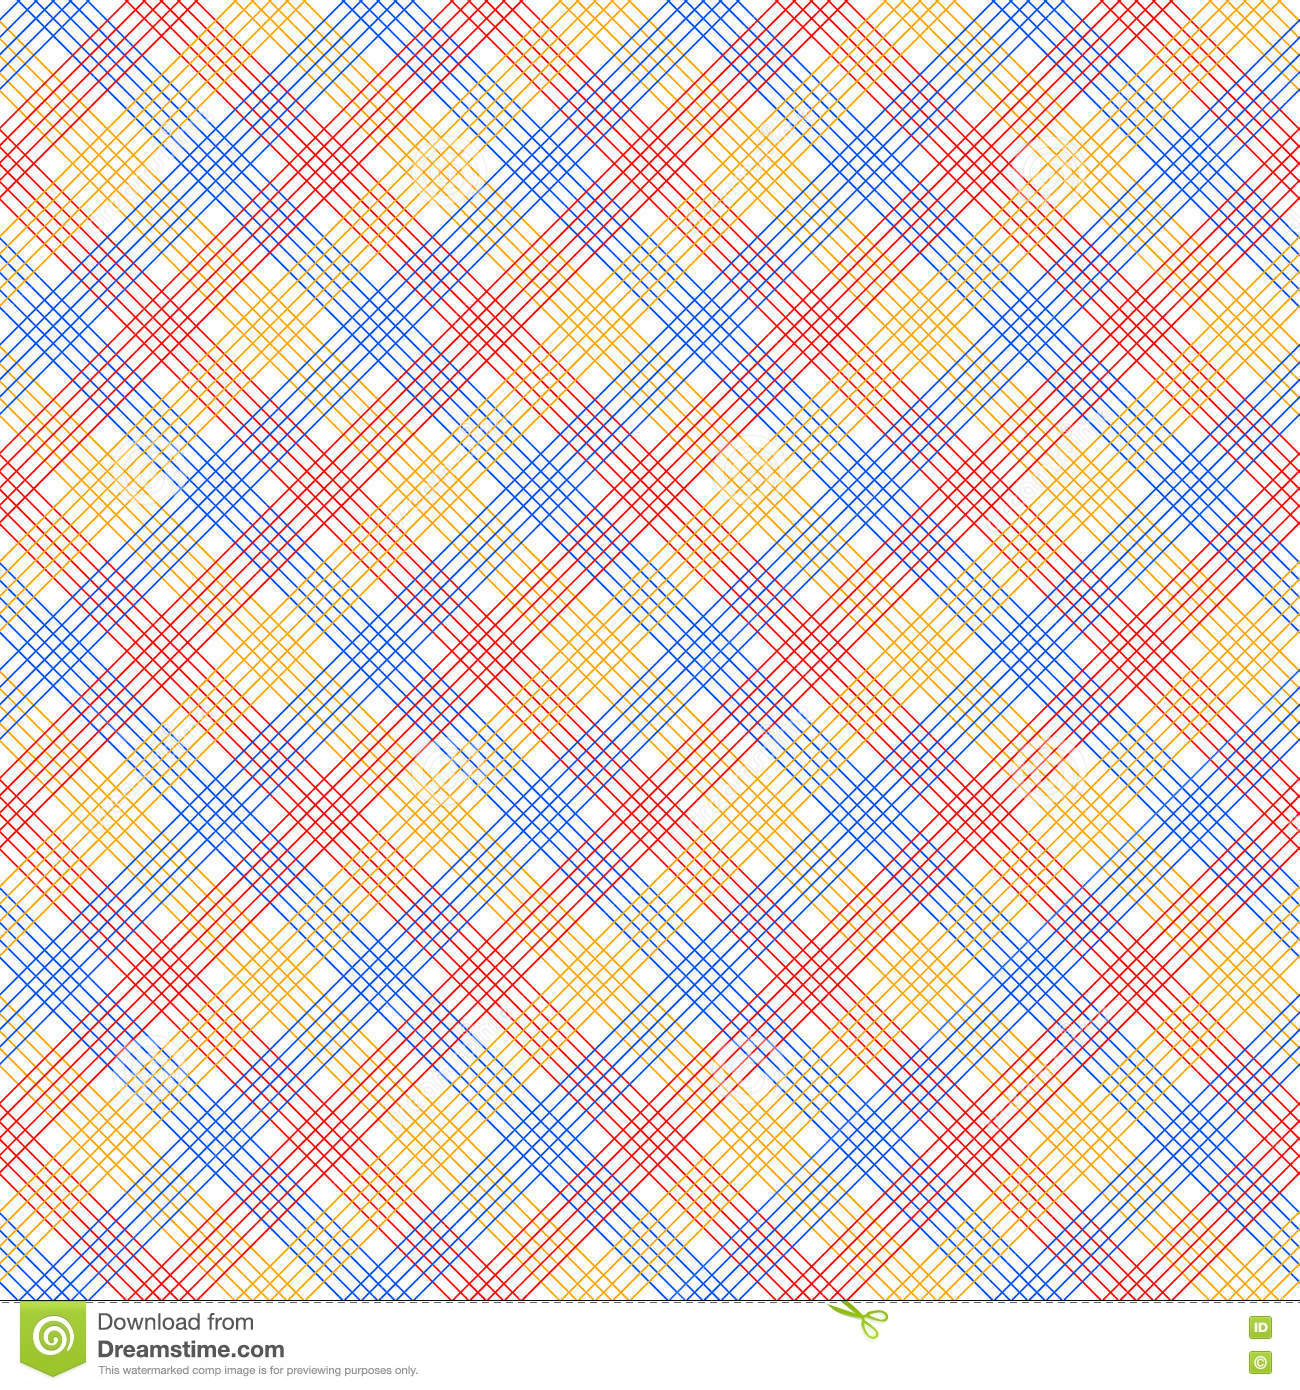 Red blue and yellow checkered colorful seamless pattern, vector